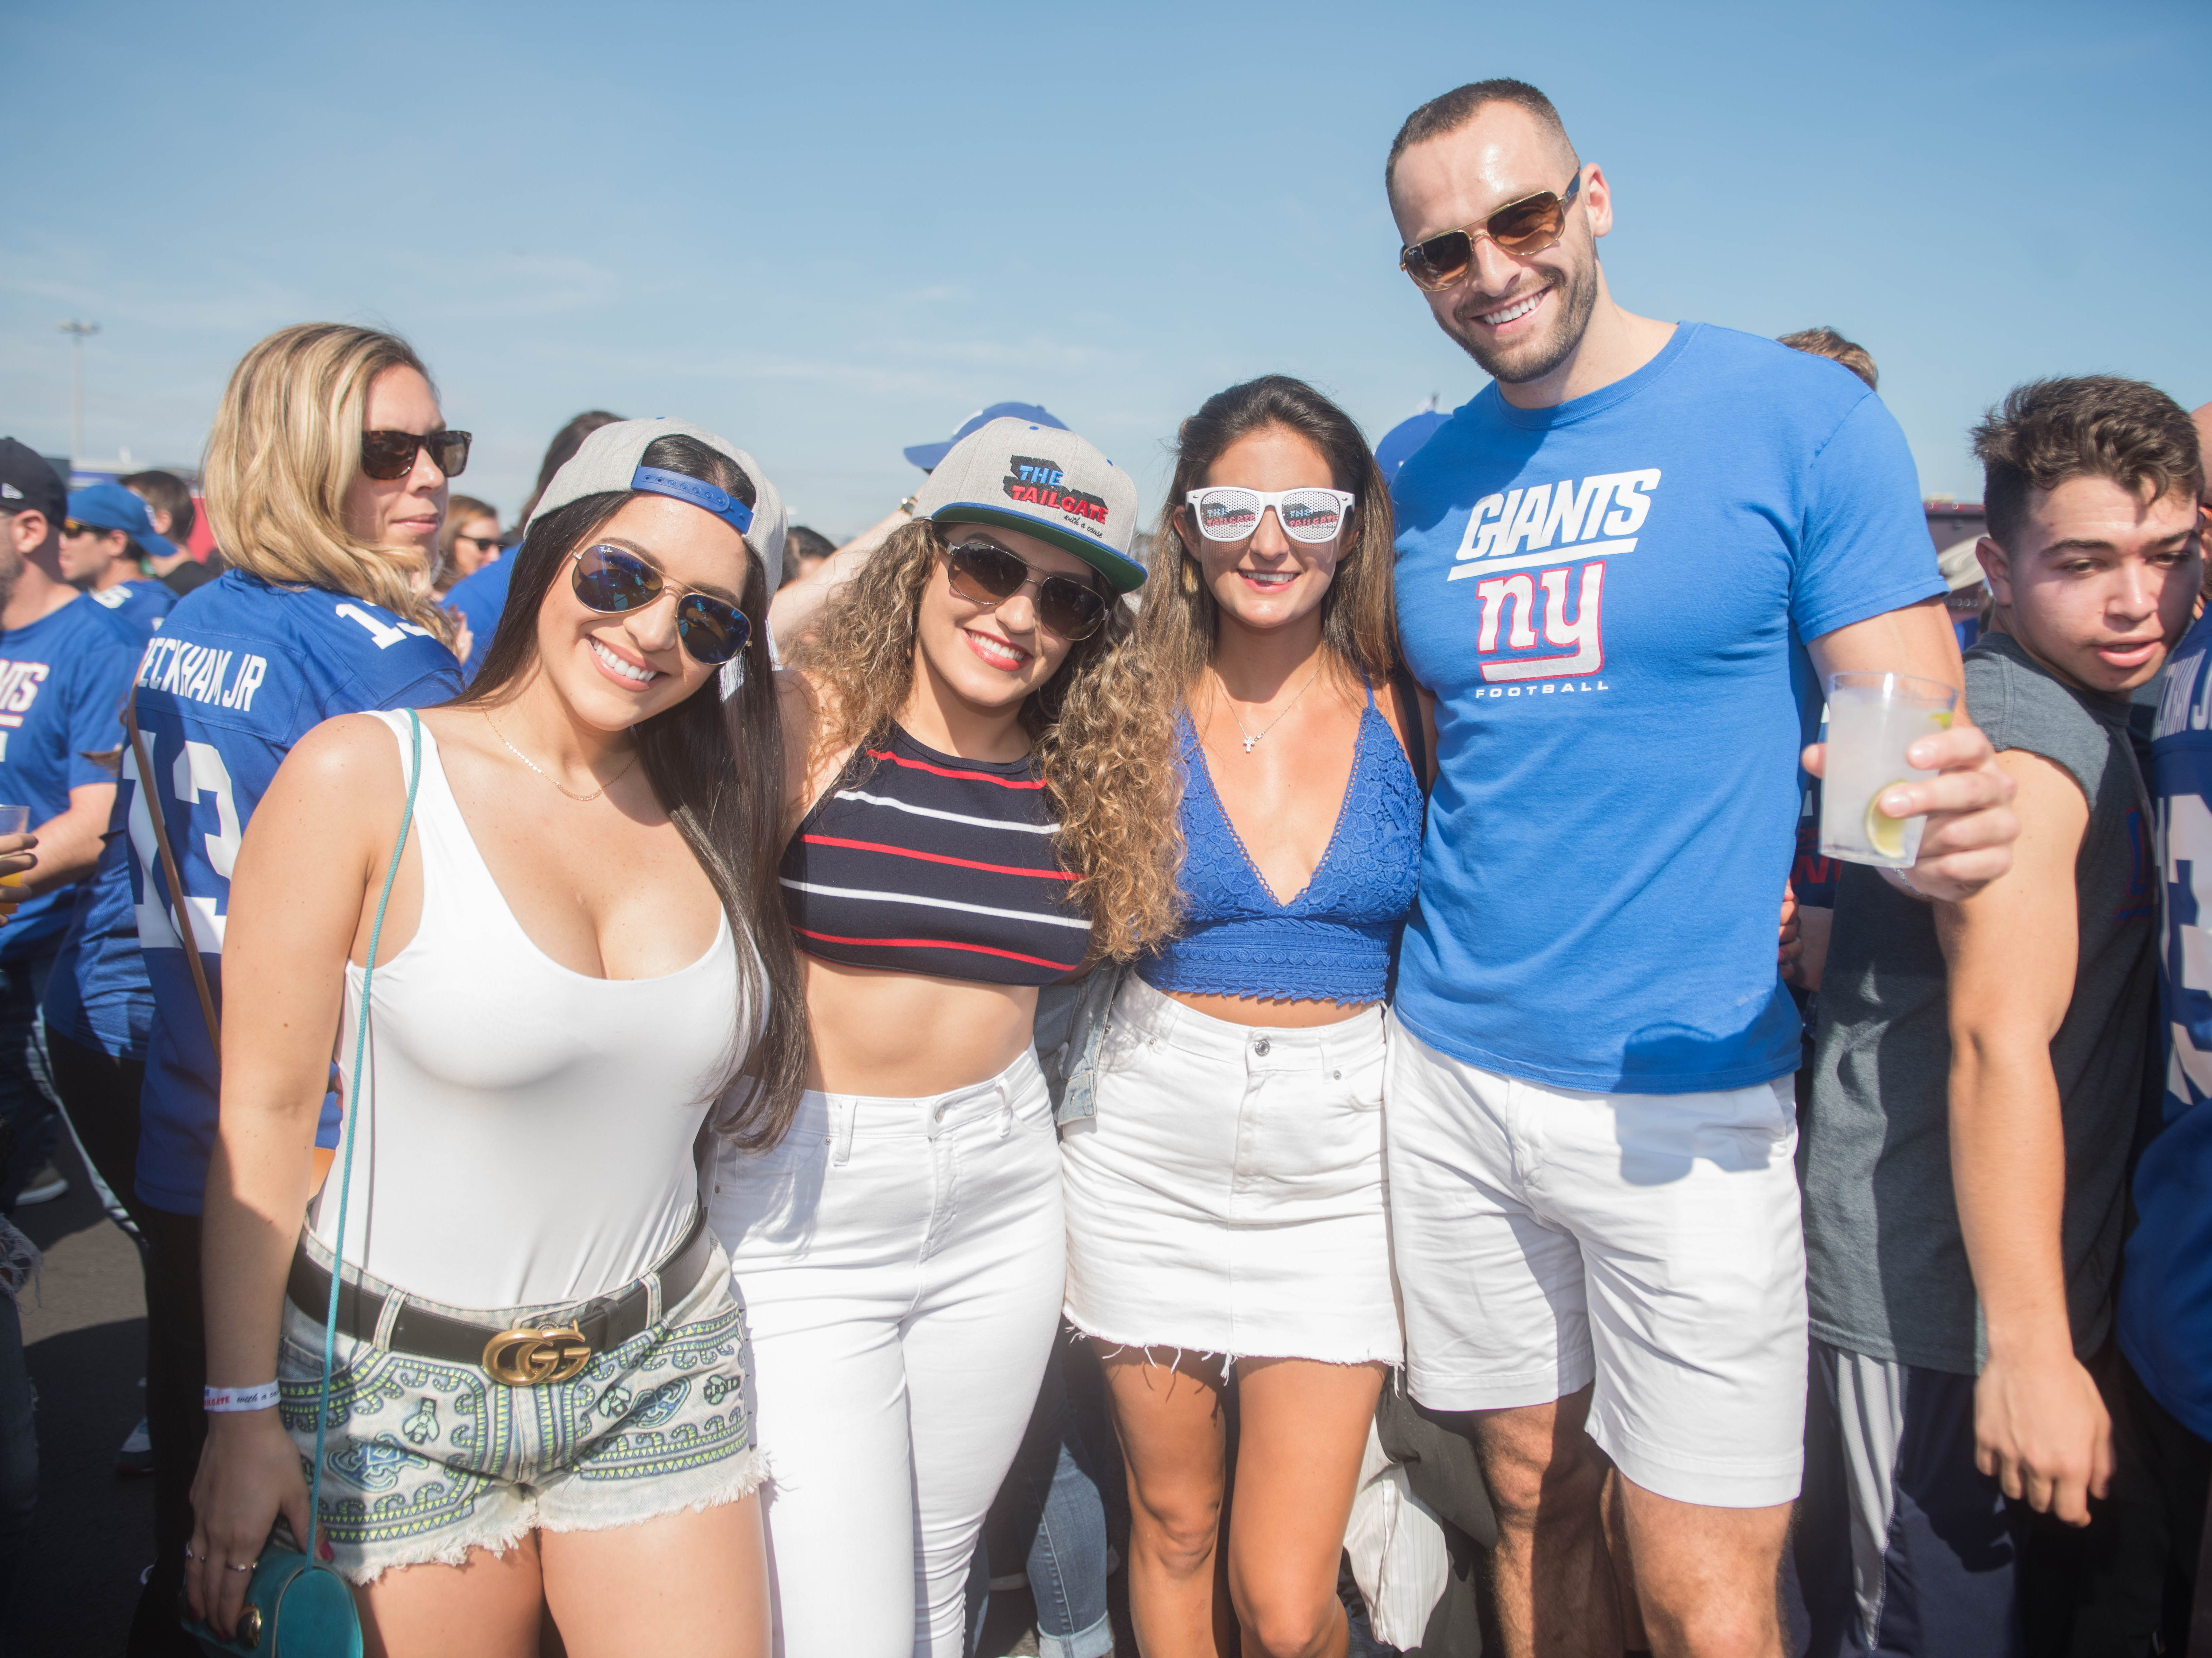 Gabriella, Marissa, Crystal and Stephen at the Giants vs. Saints tailgate party, Sunday, Sept. 30, 2018.